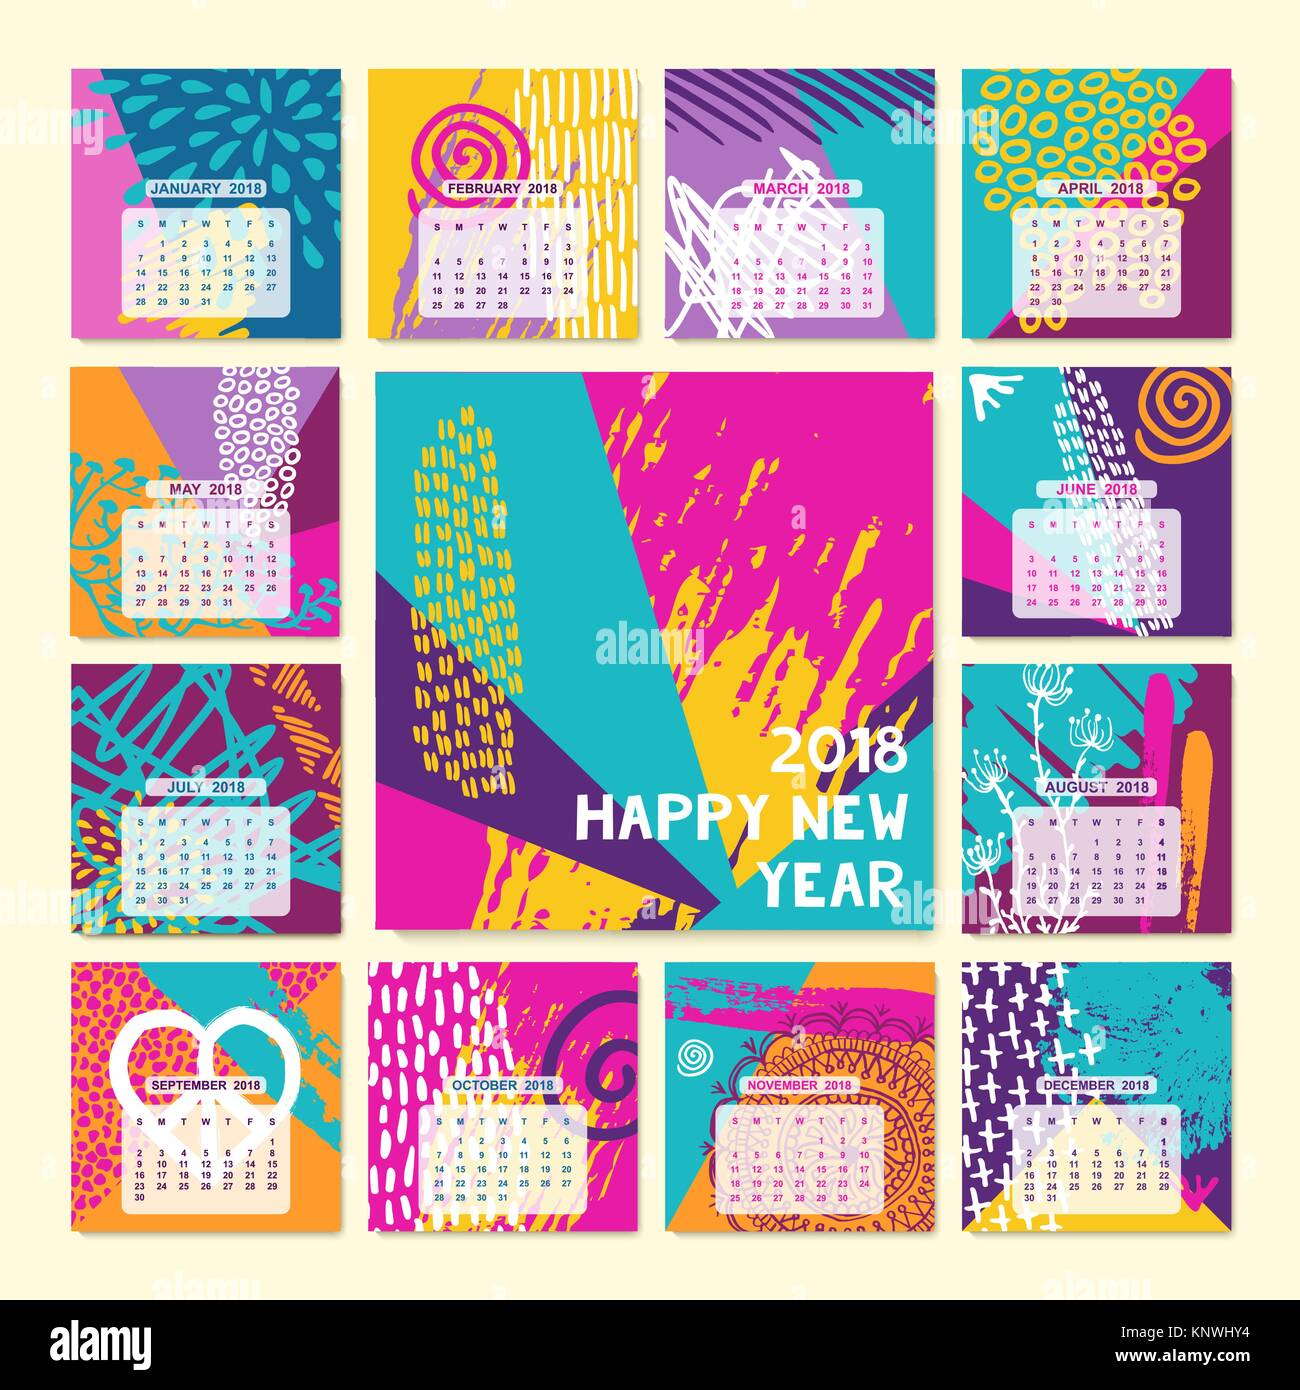 2018 new year calendar template set of monthly planner designs with colorful hand drawn illustration modern boho style art eps10 vector